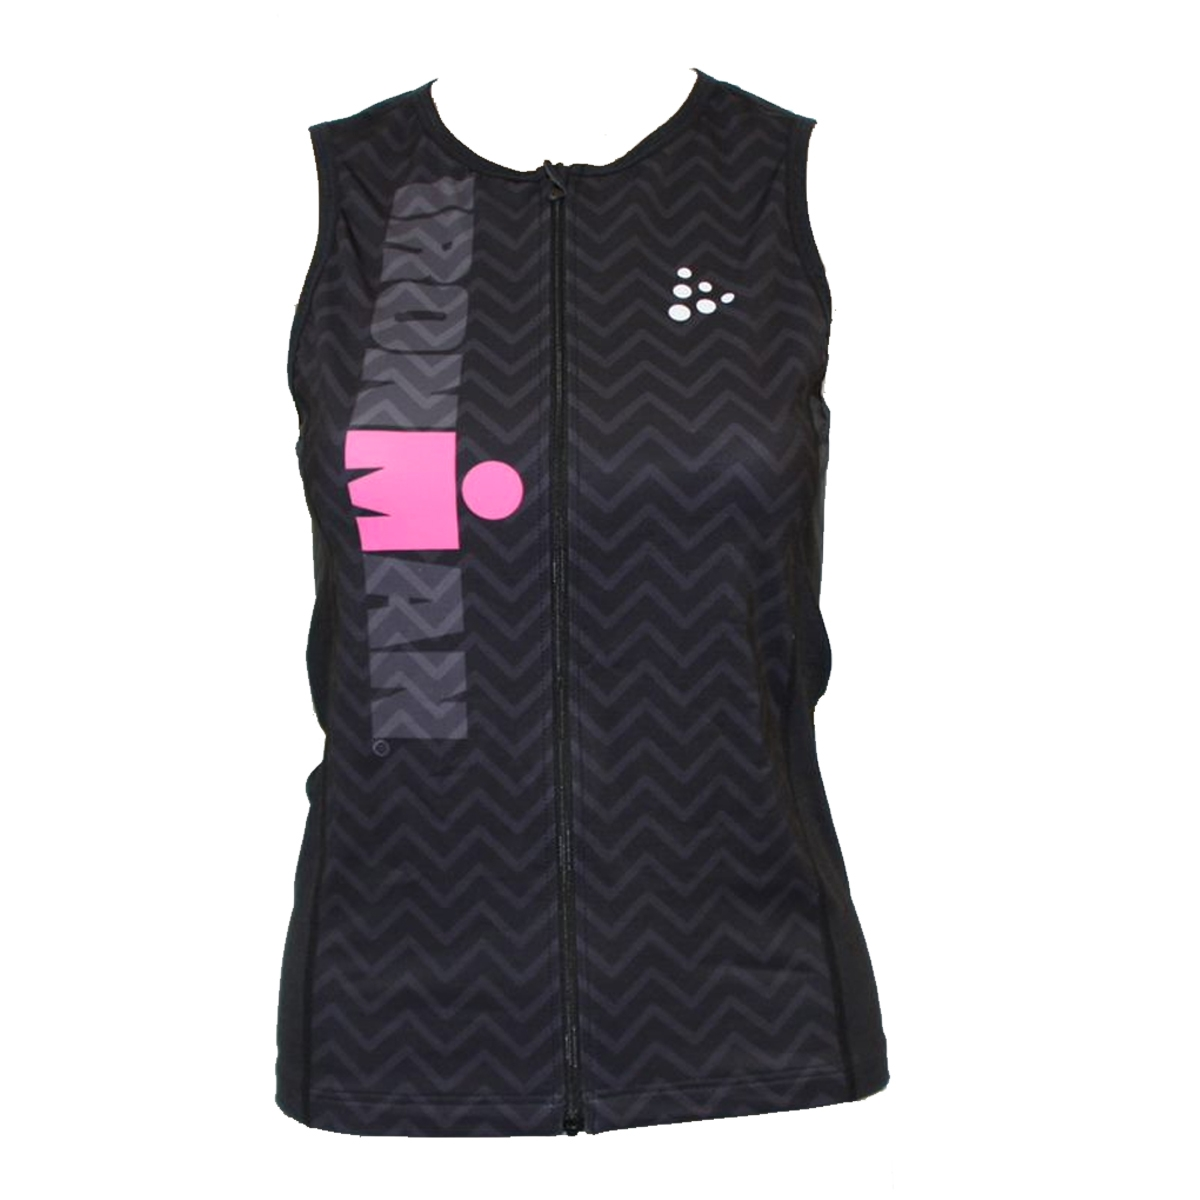 IRONMAN Craft Women's Tri Top-Black/Pink